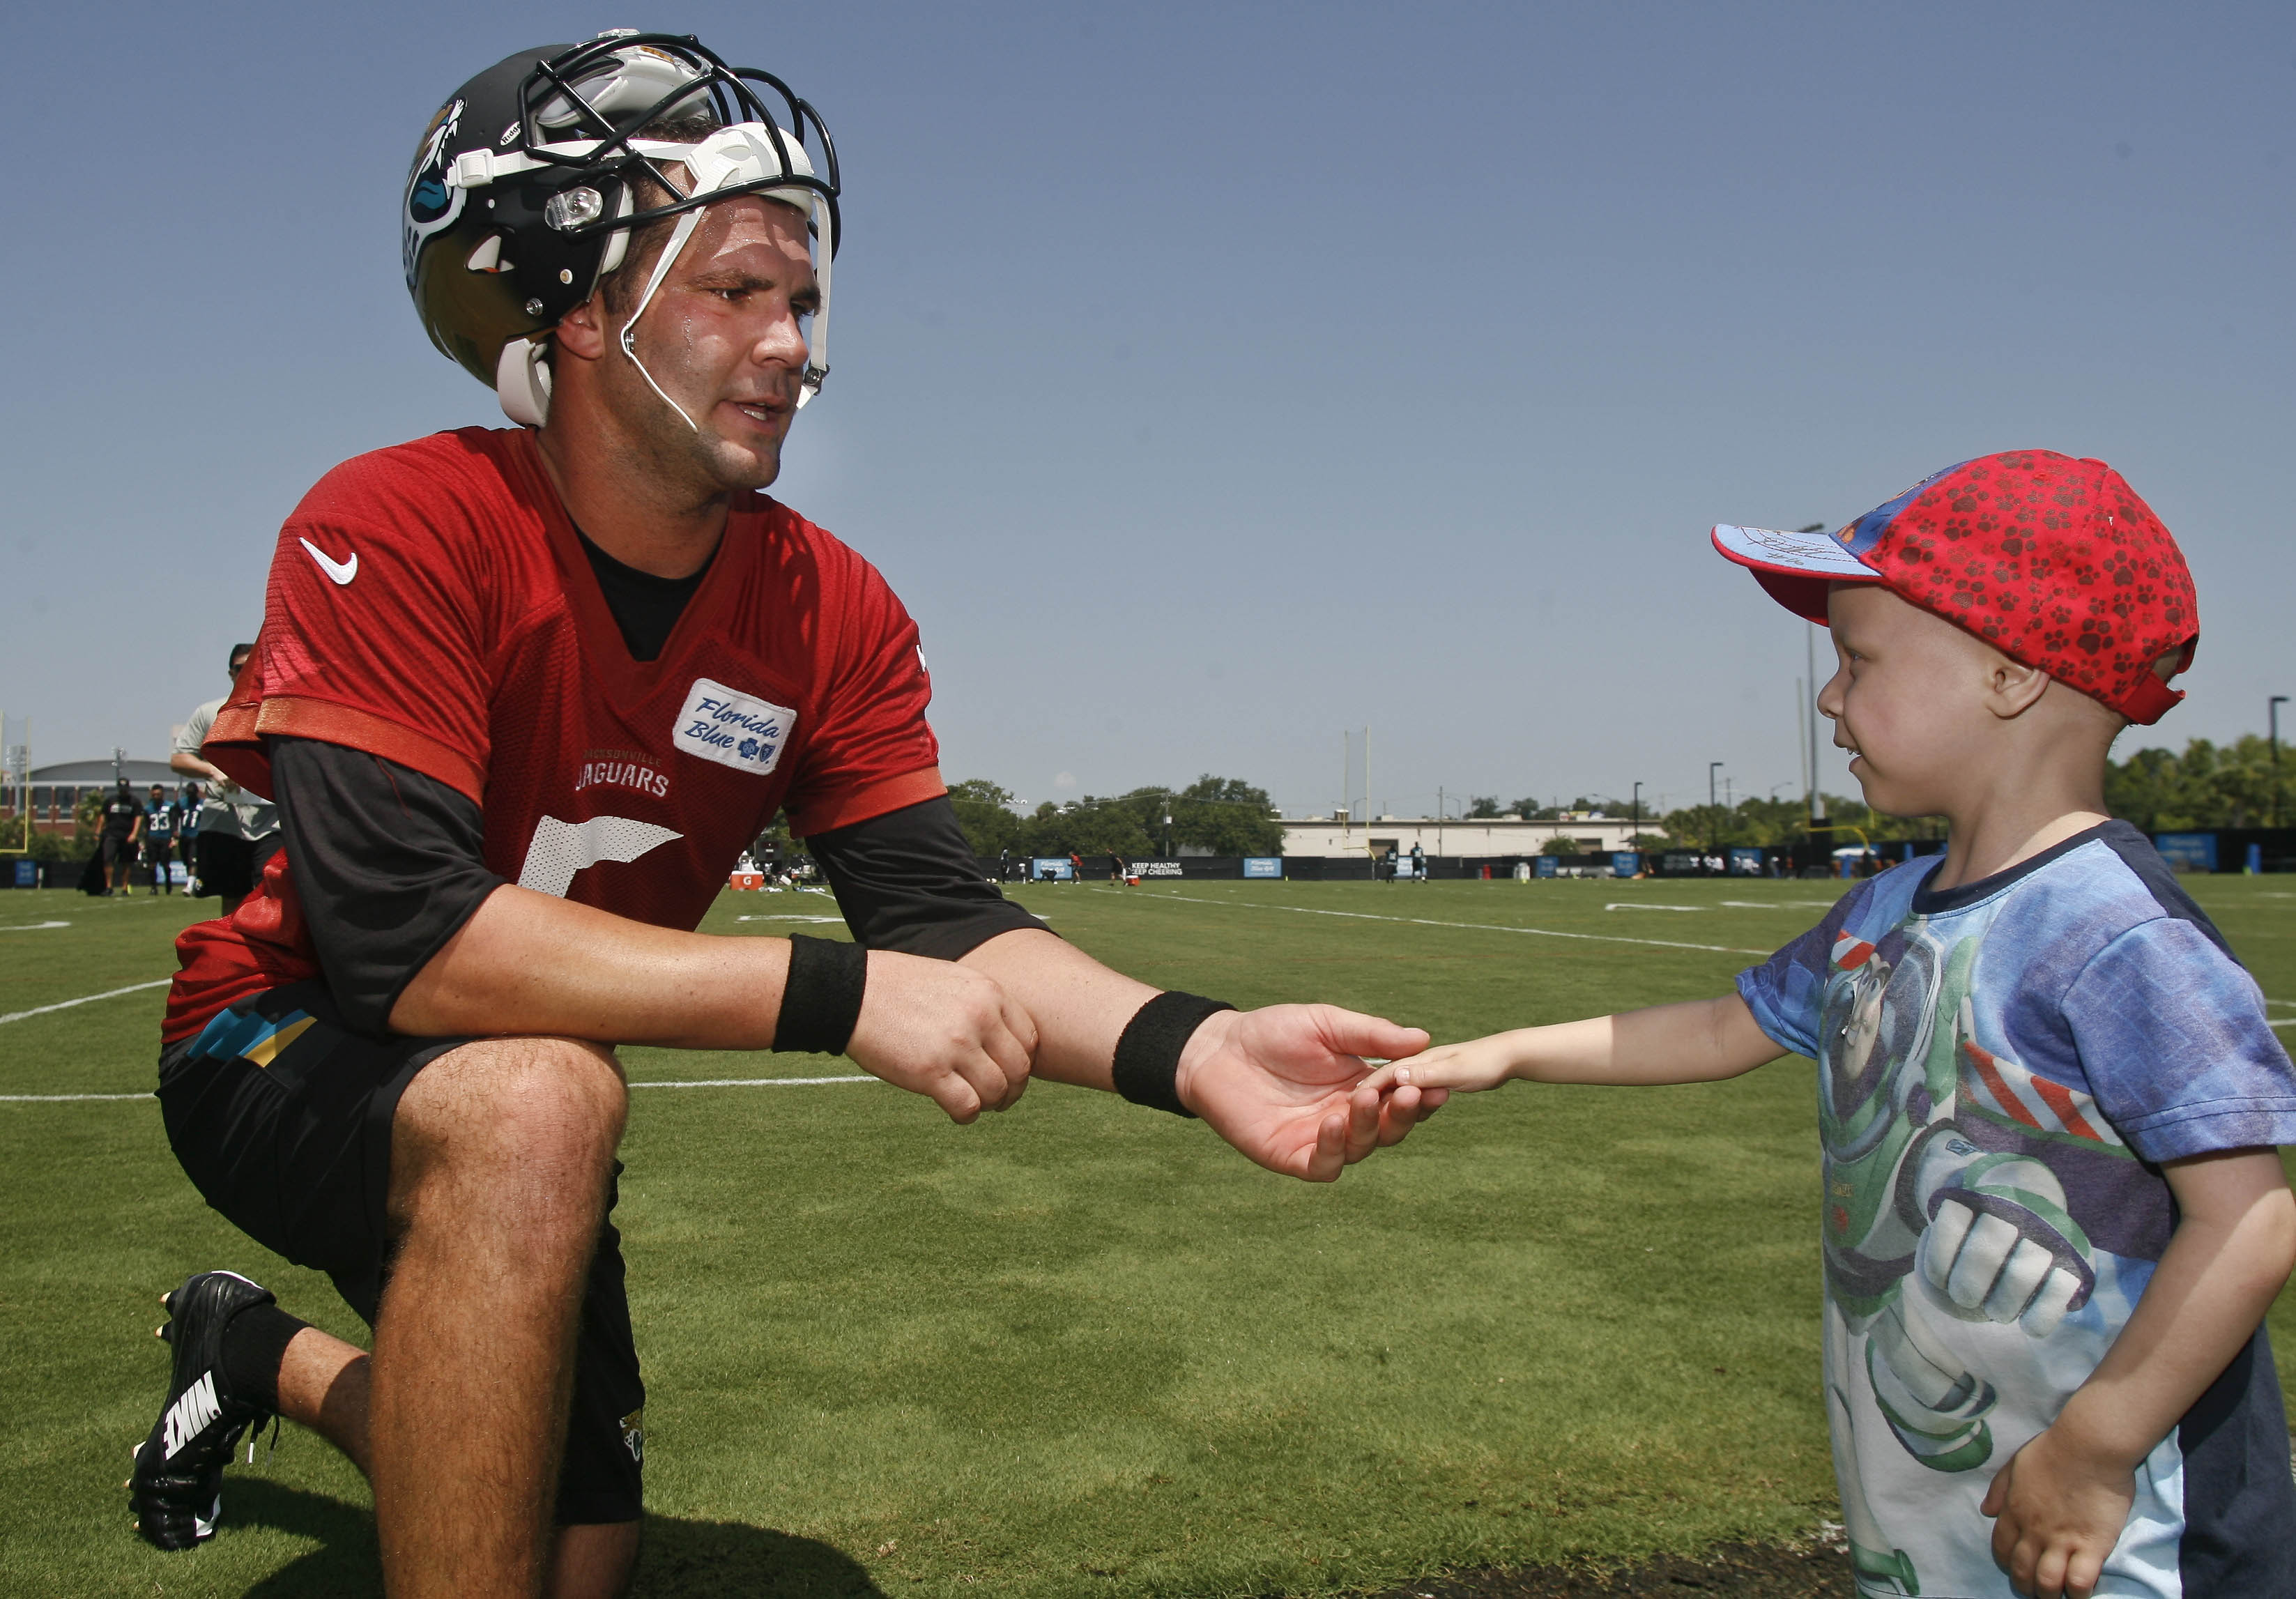 Blake Bortles consoles a young Jaguars fan, tells him it will be ok soon.